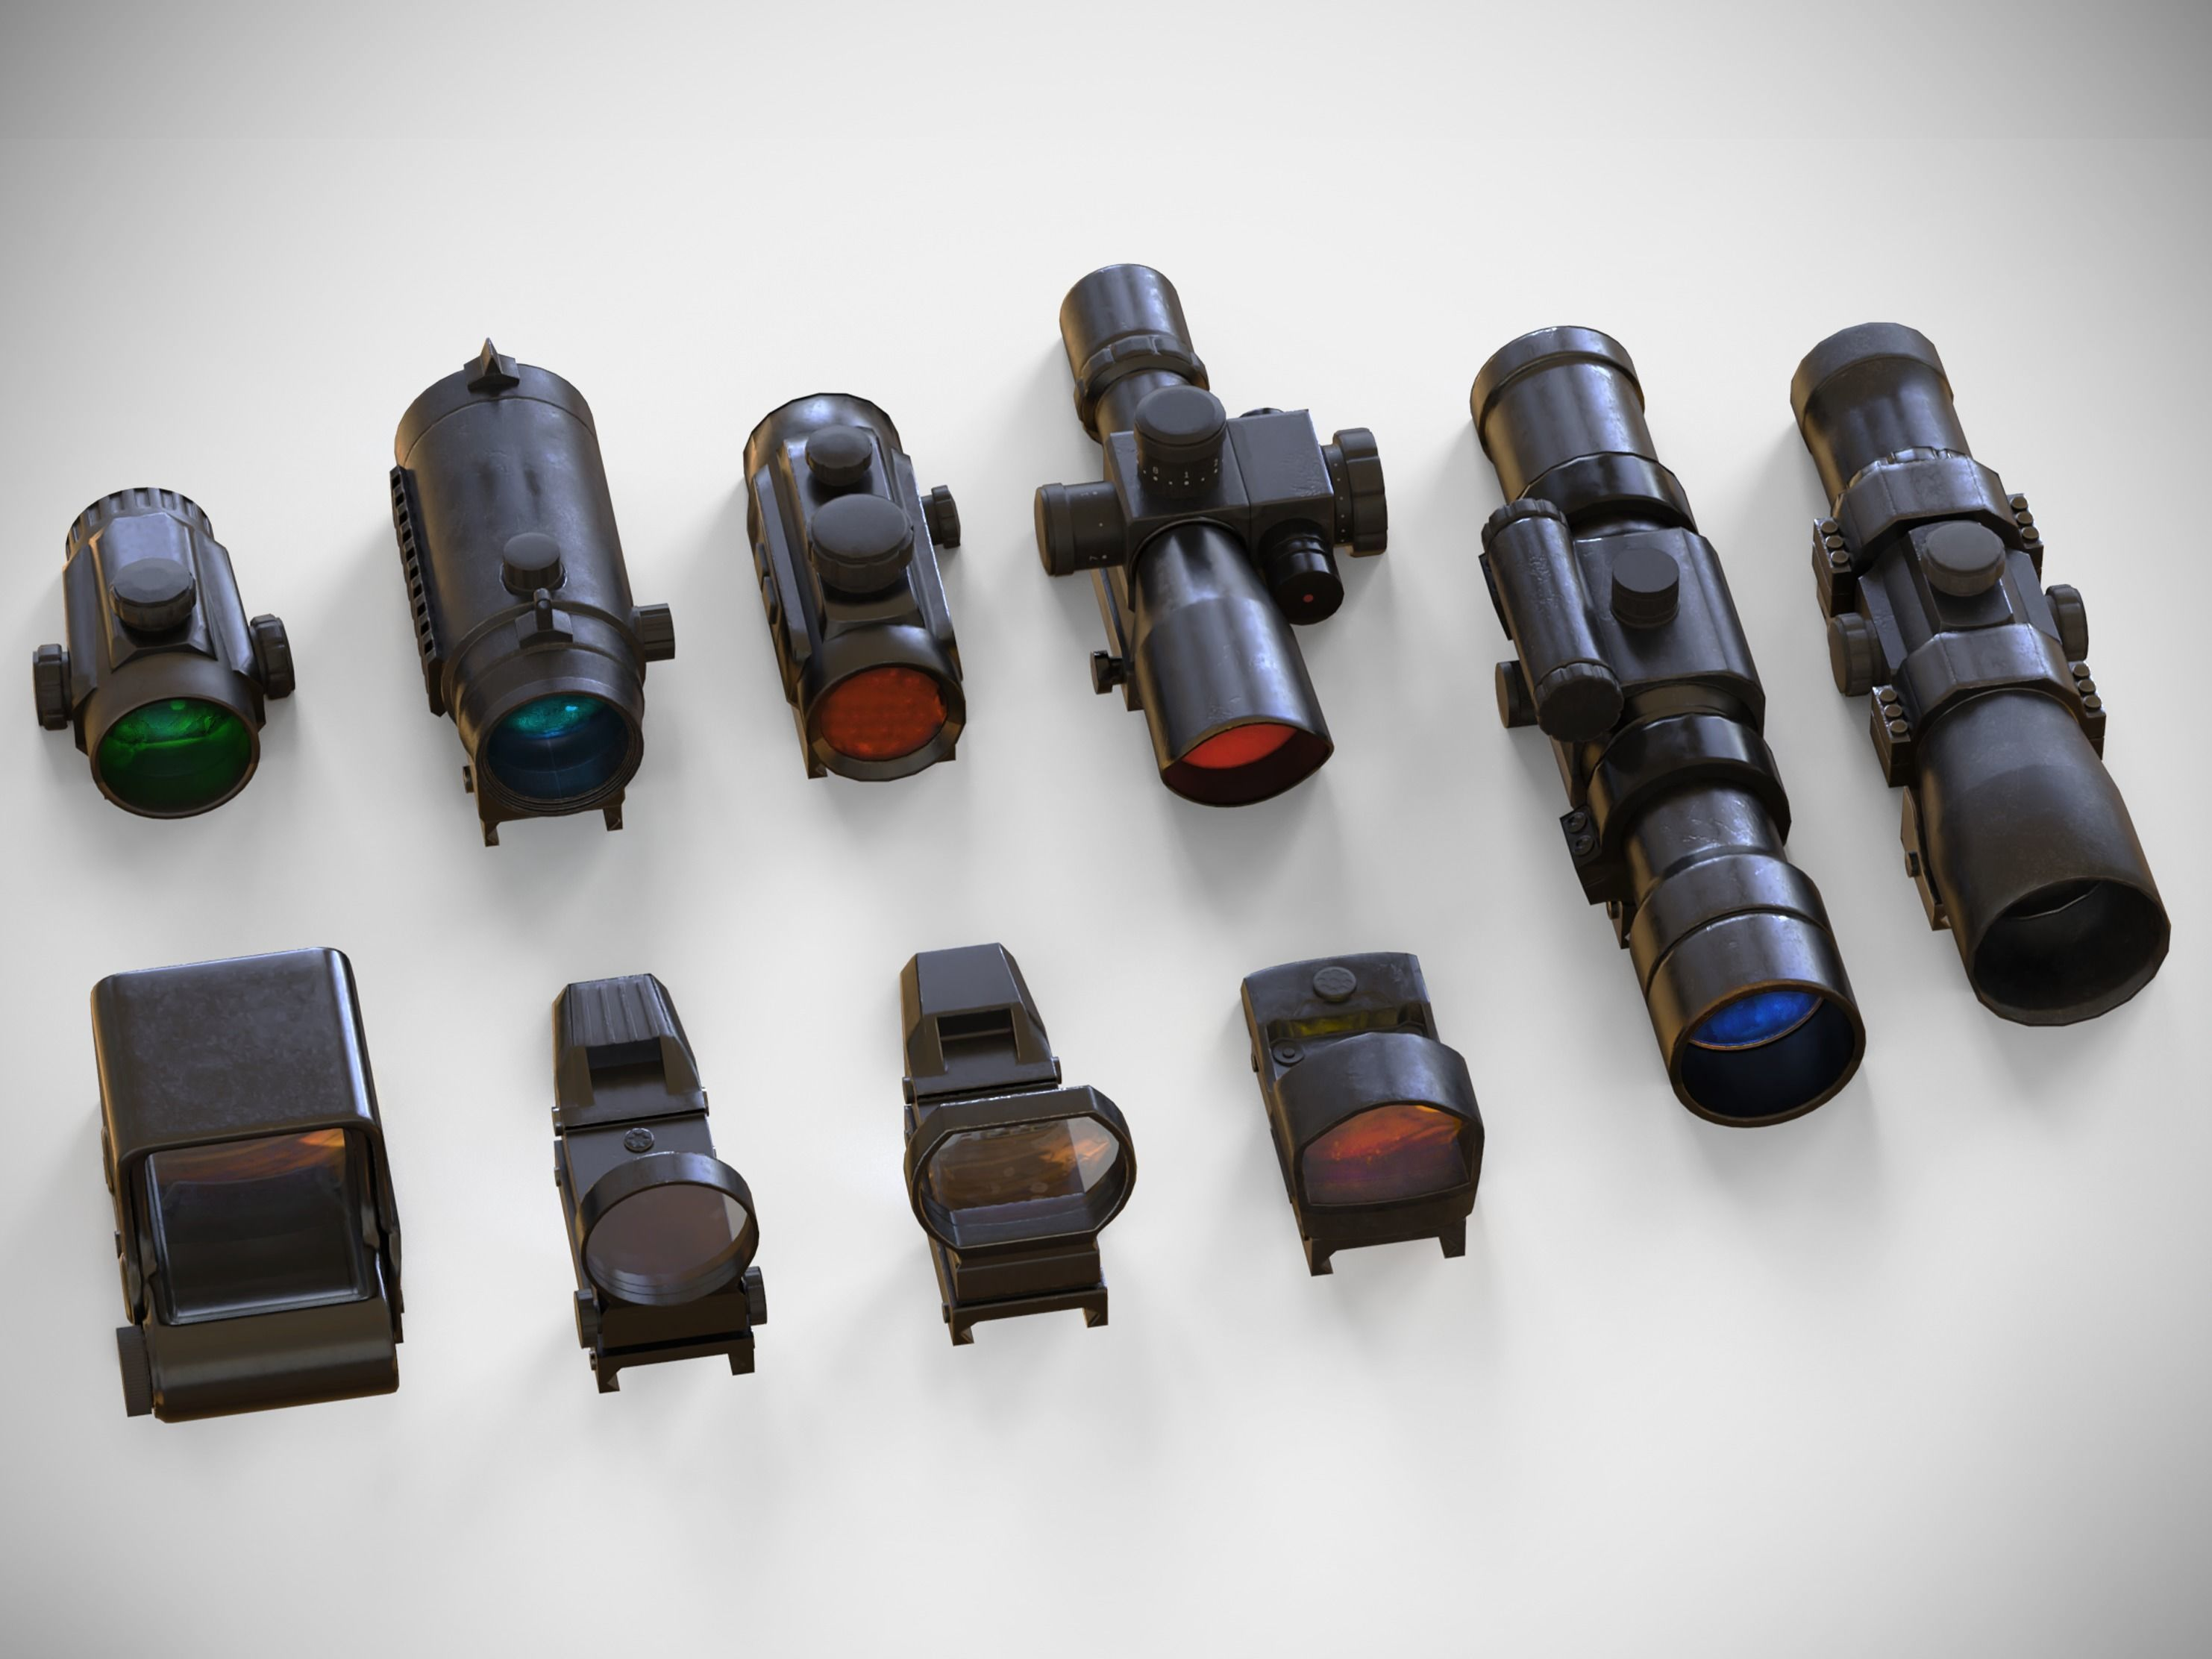 Sight Attachments Pack - Optical - Scope - Reflex - Holographic